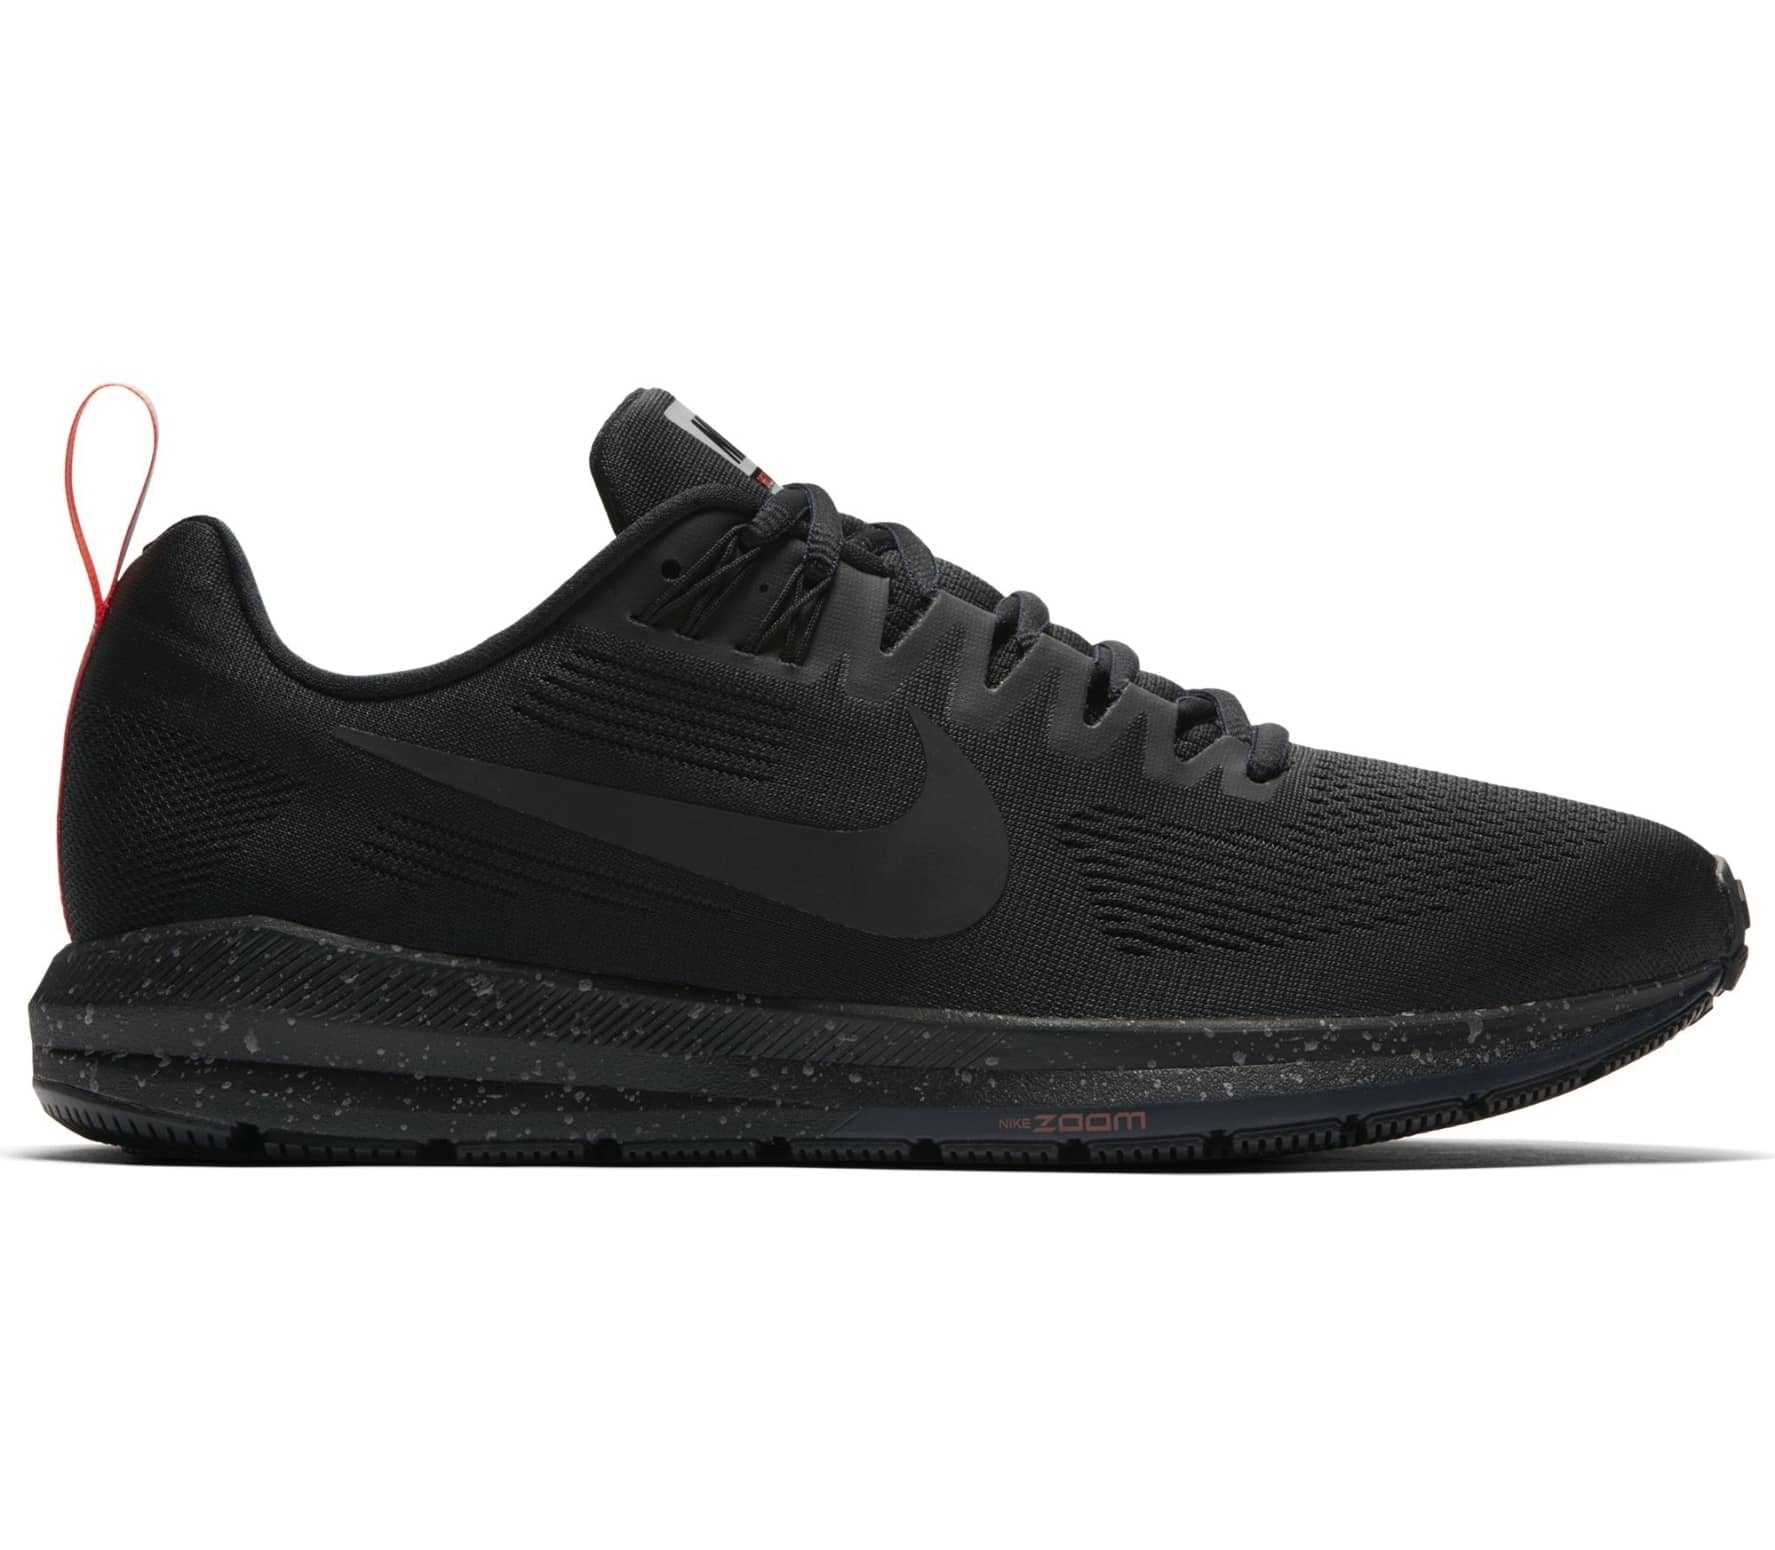 on sale 16682 349d8 Nike - Air Zoom Structure 21 Shield men s running shoes (black)